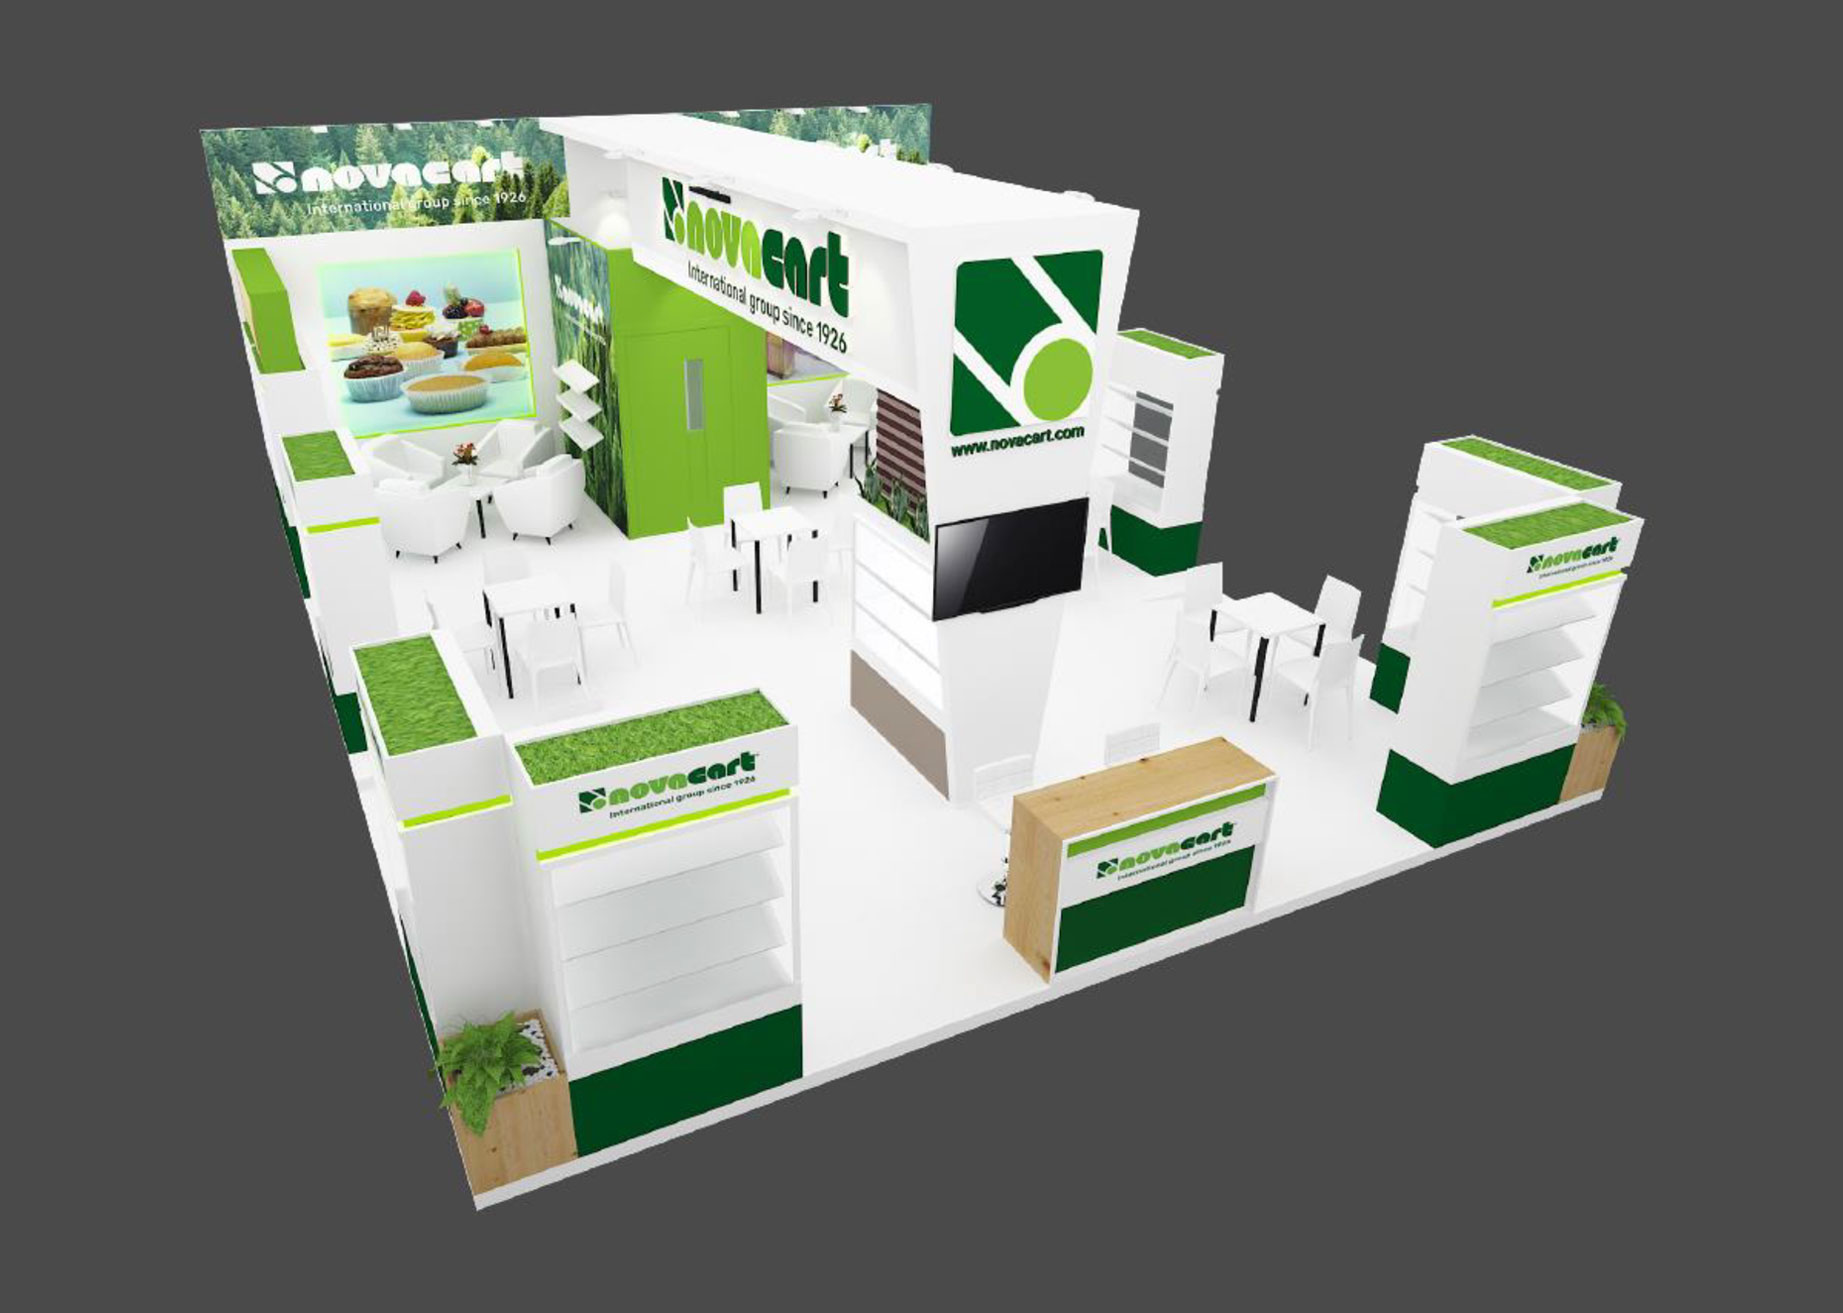 Gulfood Manufacturing Novacart stand from above